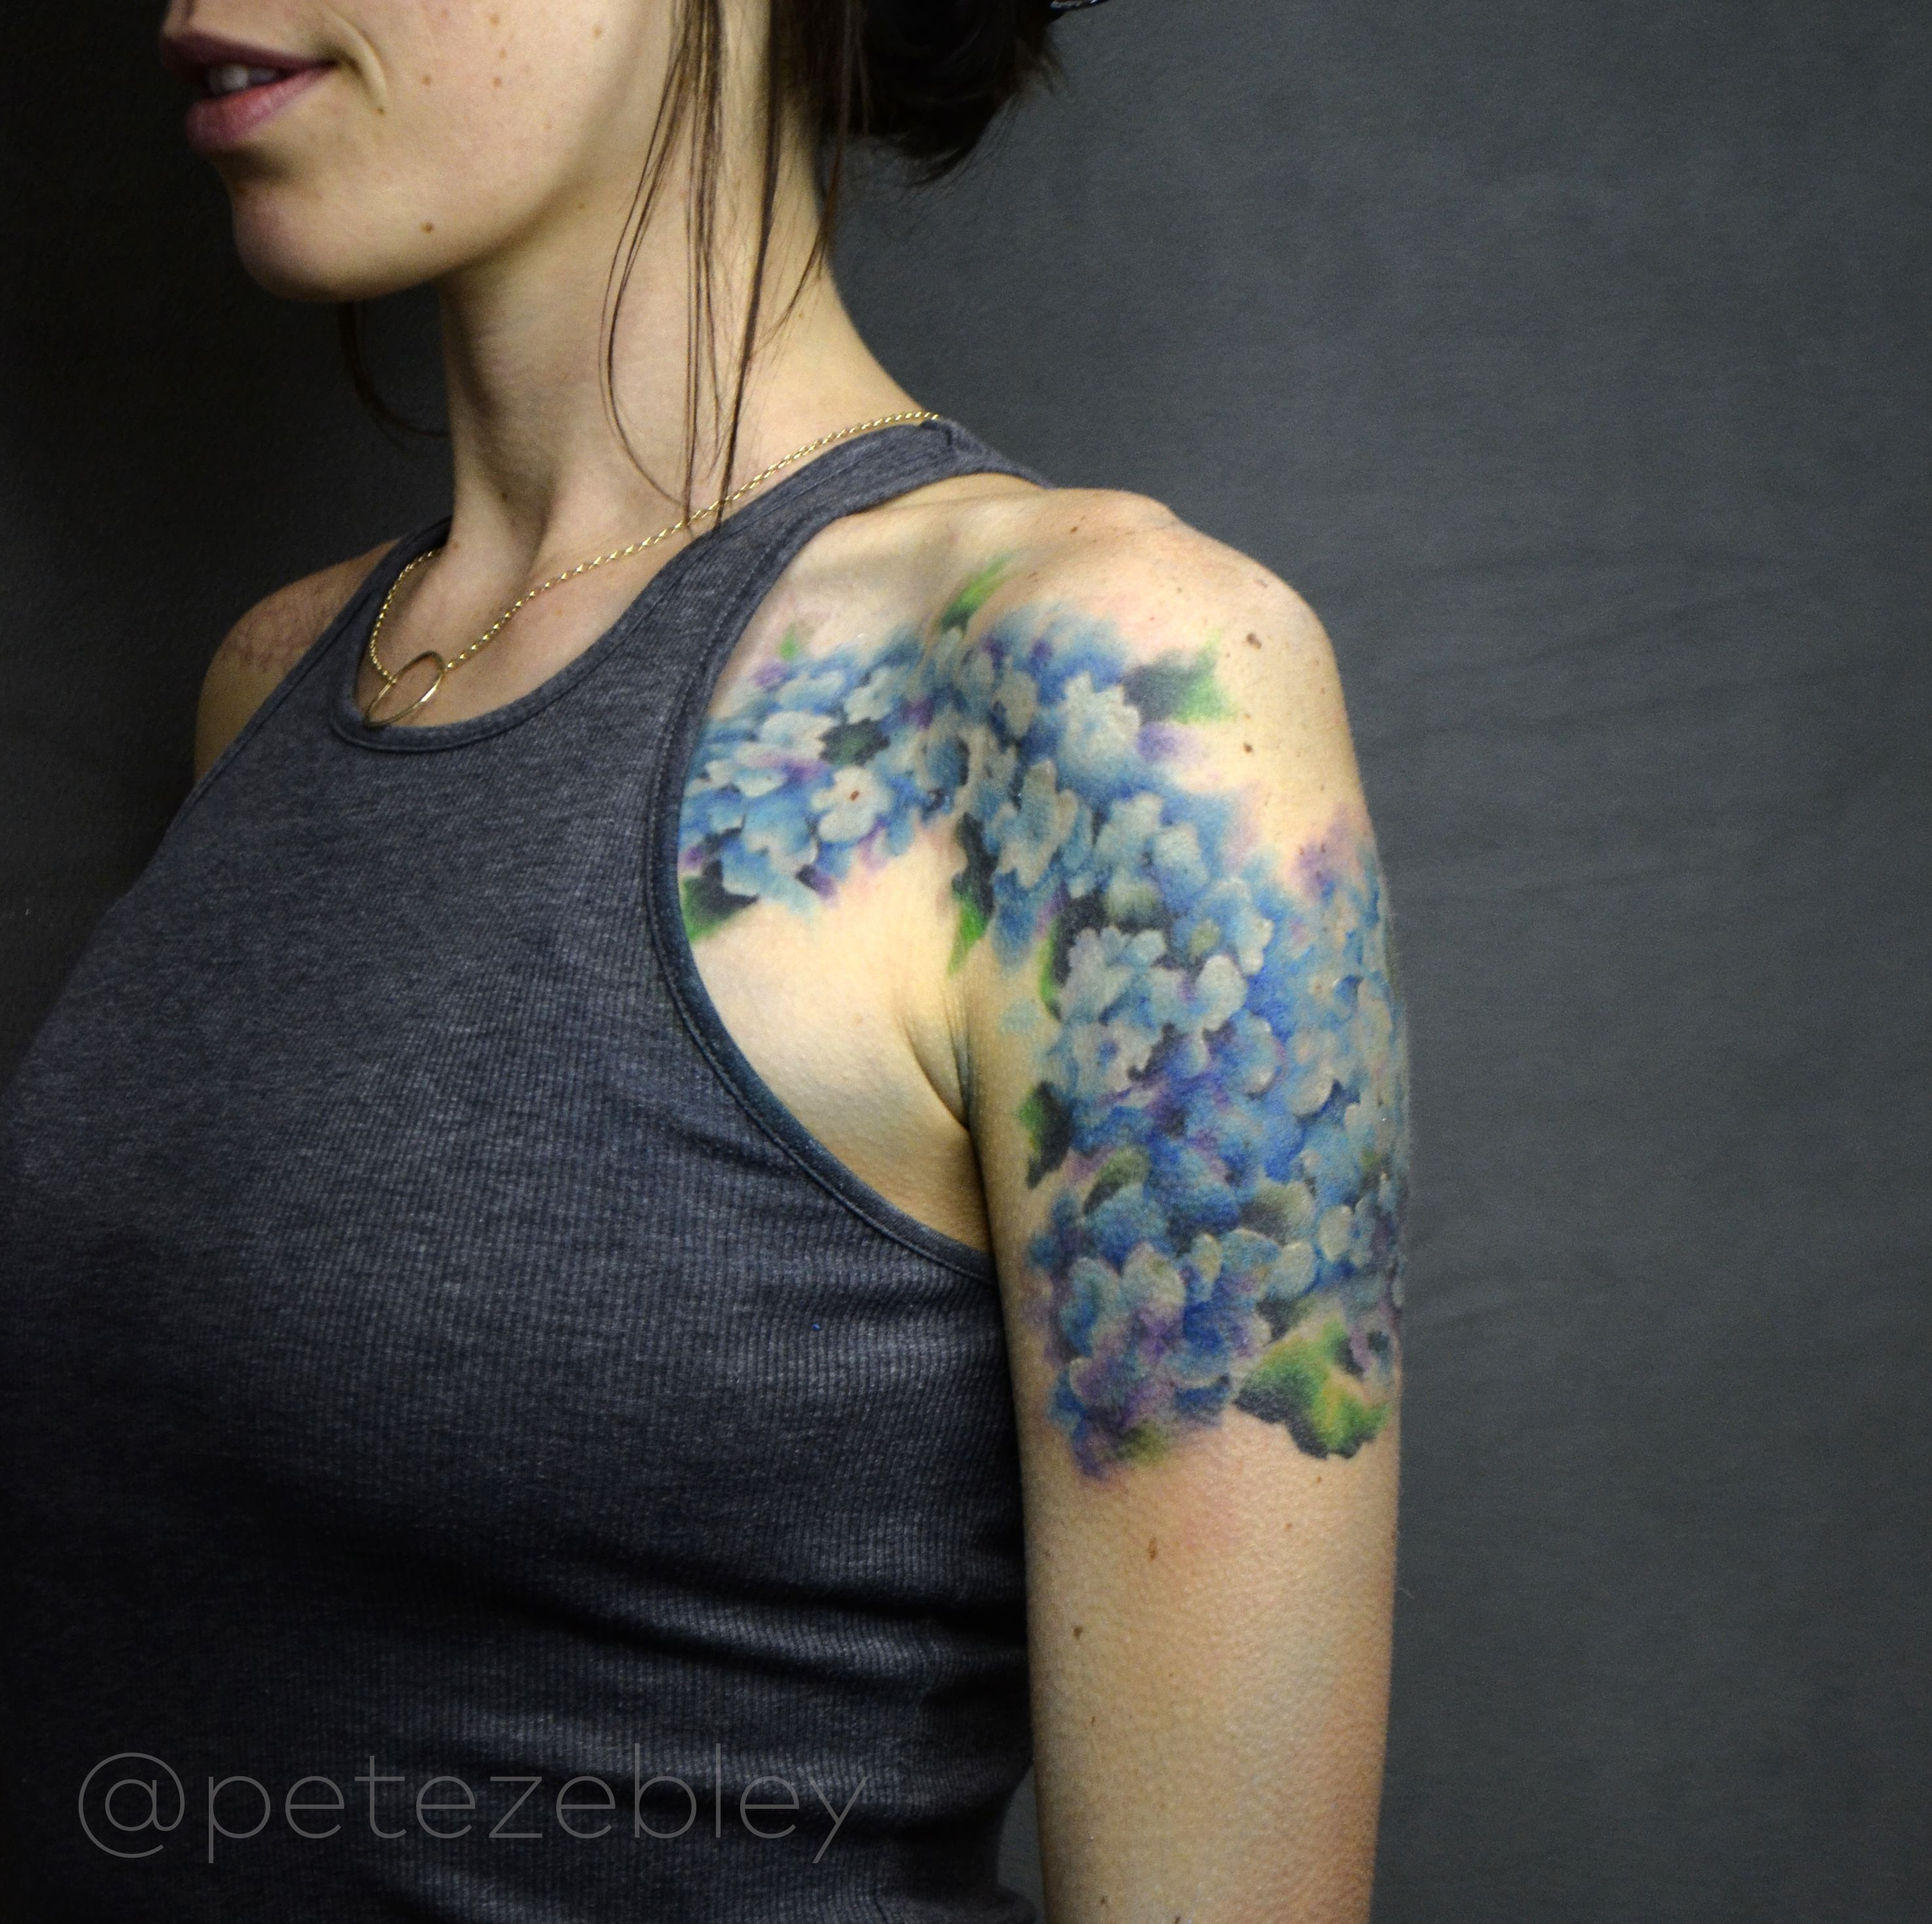 Hydrangea watercolor tattoo completed by pete zebley in